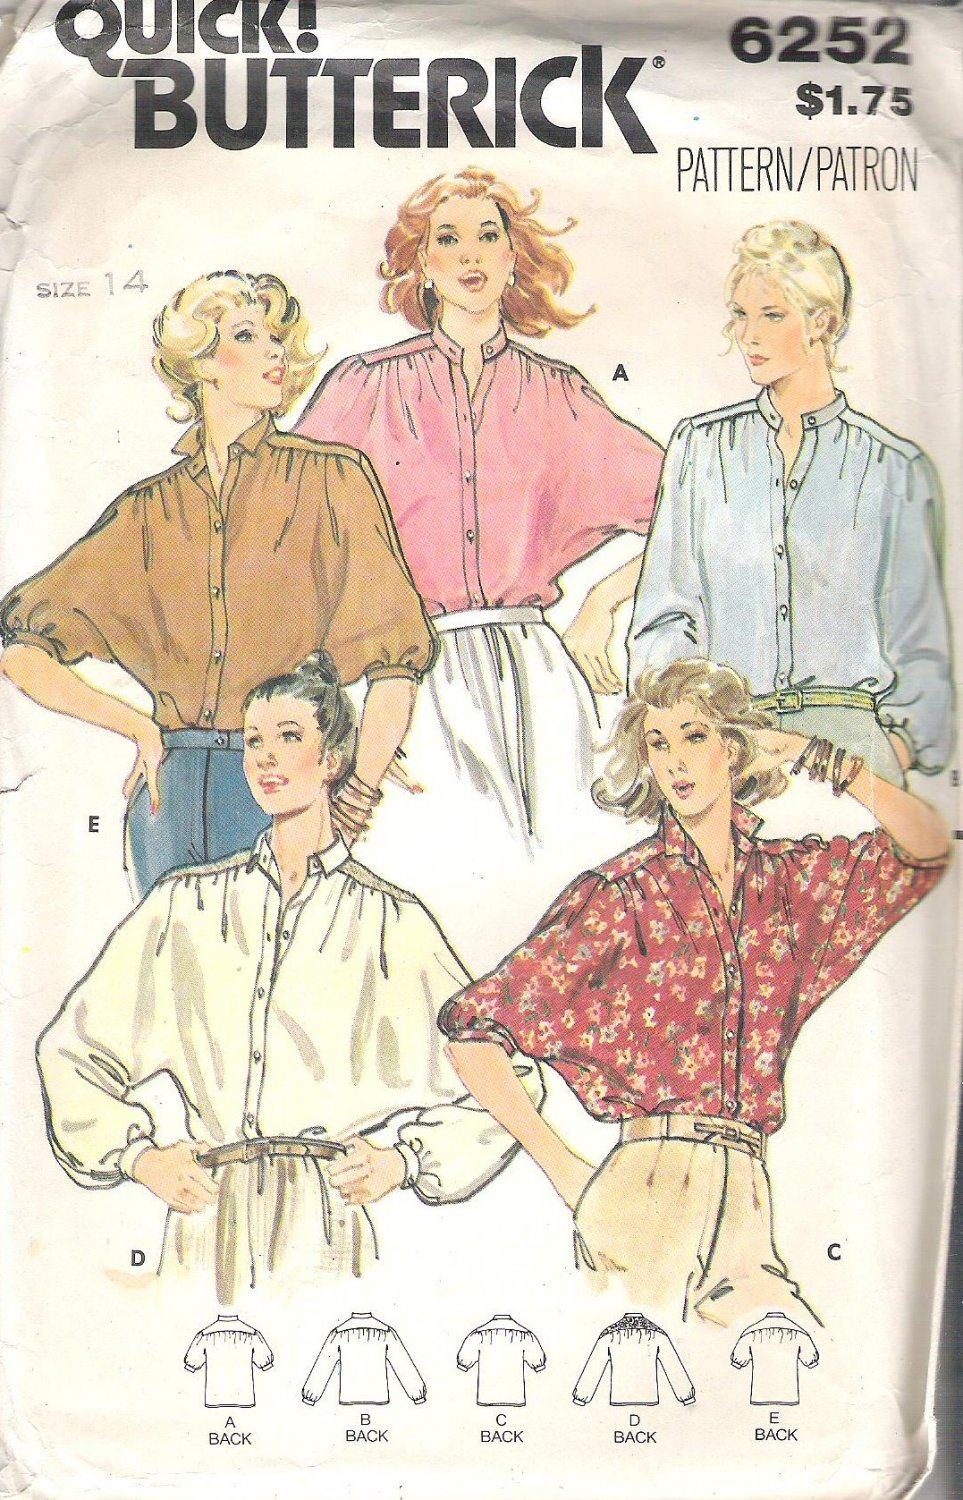 Butterick 6252 Pattern Loose Fitting Blouse Shirt Top with Dolman Sleeves  Size 14  Cut